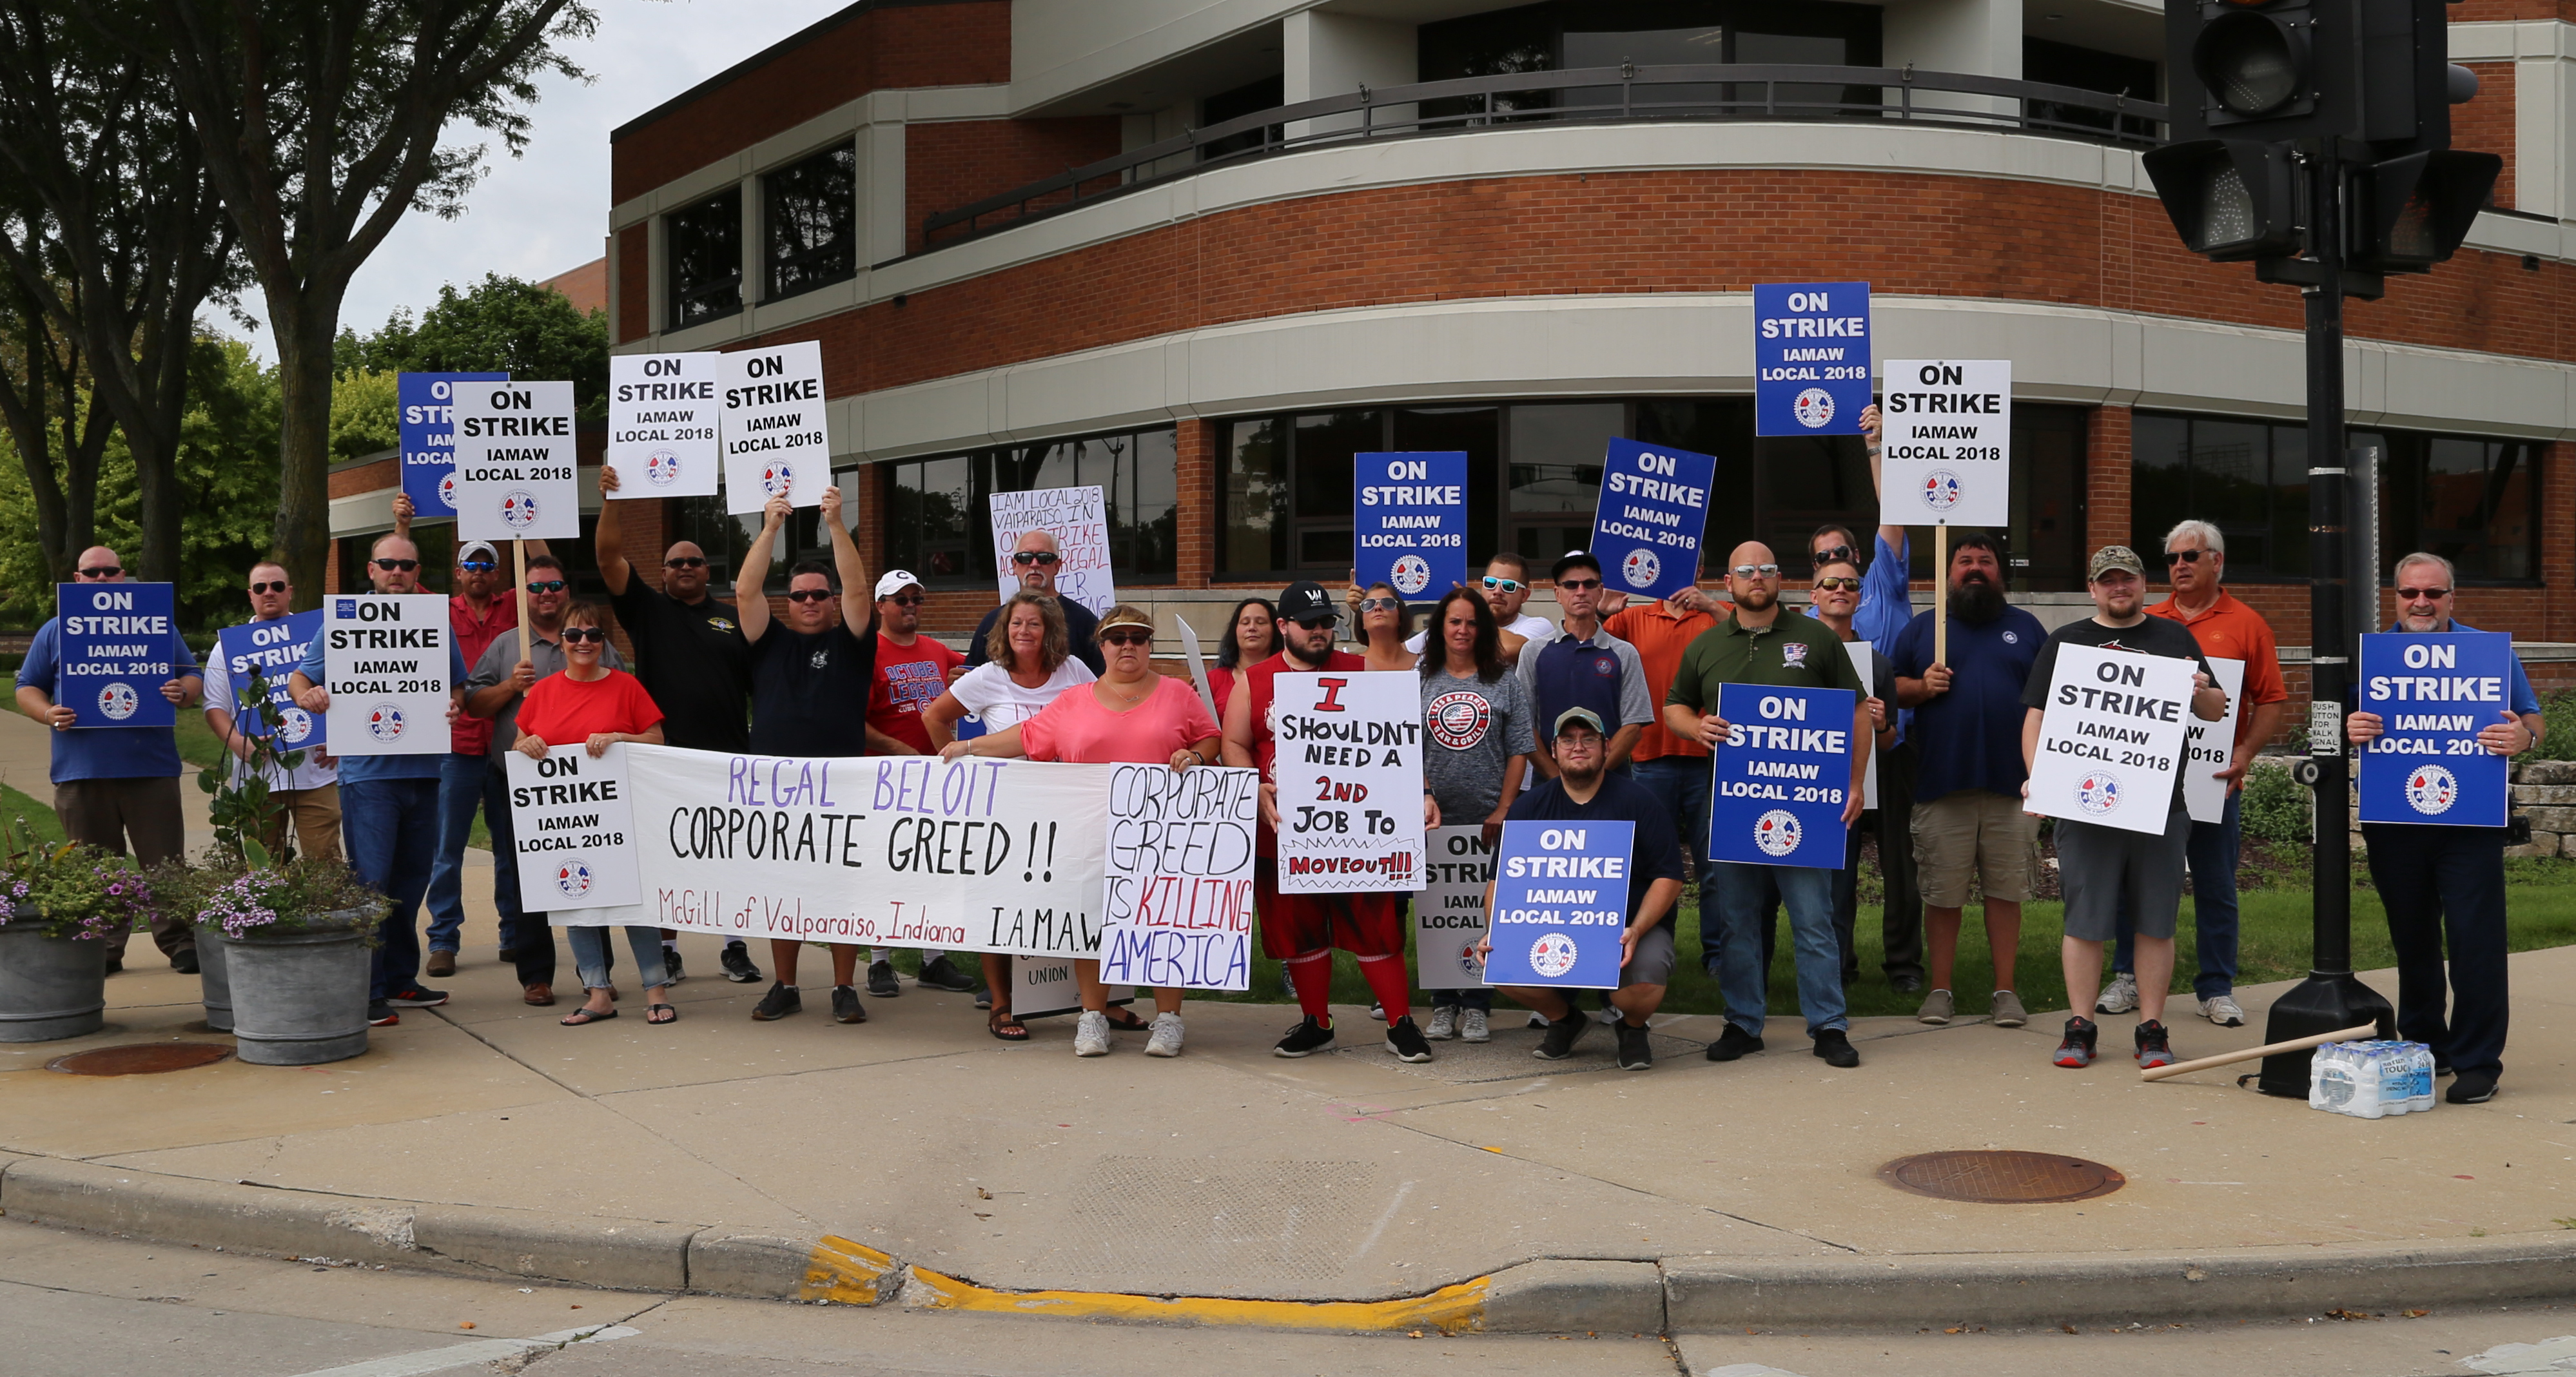 Machinists Union Asks Trump, Pence to Urge Regal Beloit to Reconsider Indiana Plant Closure